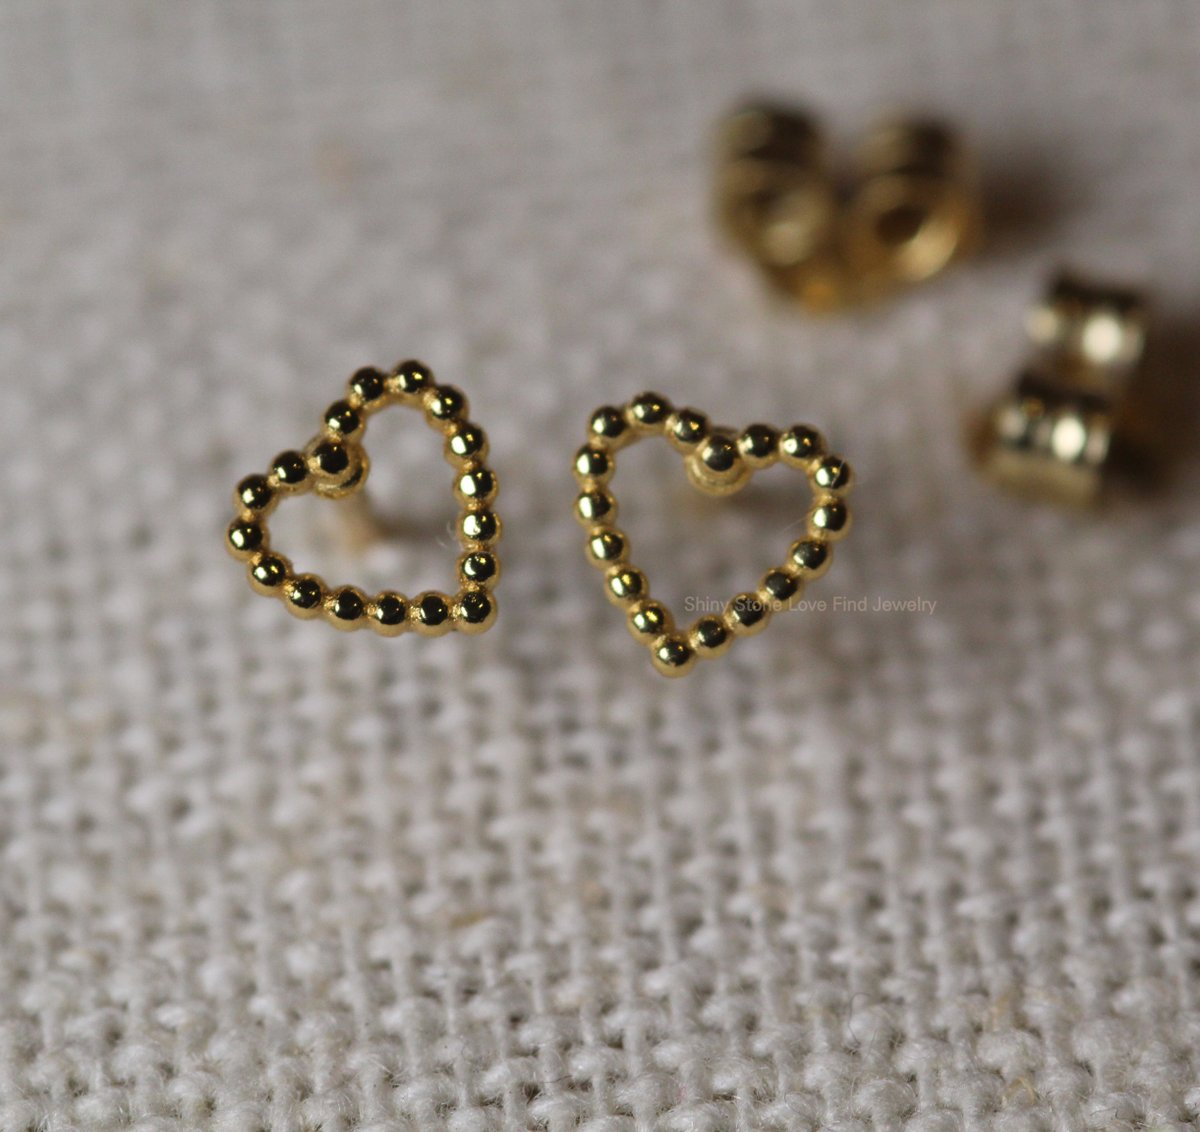 Excited to share the latest addition to my #etsy shop: 14k solid gold heart earrings stud, heart earrings gold, 14k Gold Stud earrings, valentines day gift f - love symbol earrings gold https://t.co/wrBC3PKKKd #girls #cartilage #minimalist #whitegold #anniversary #luck https://t.co/HehPLhlMSu